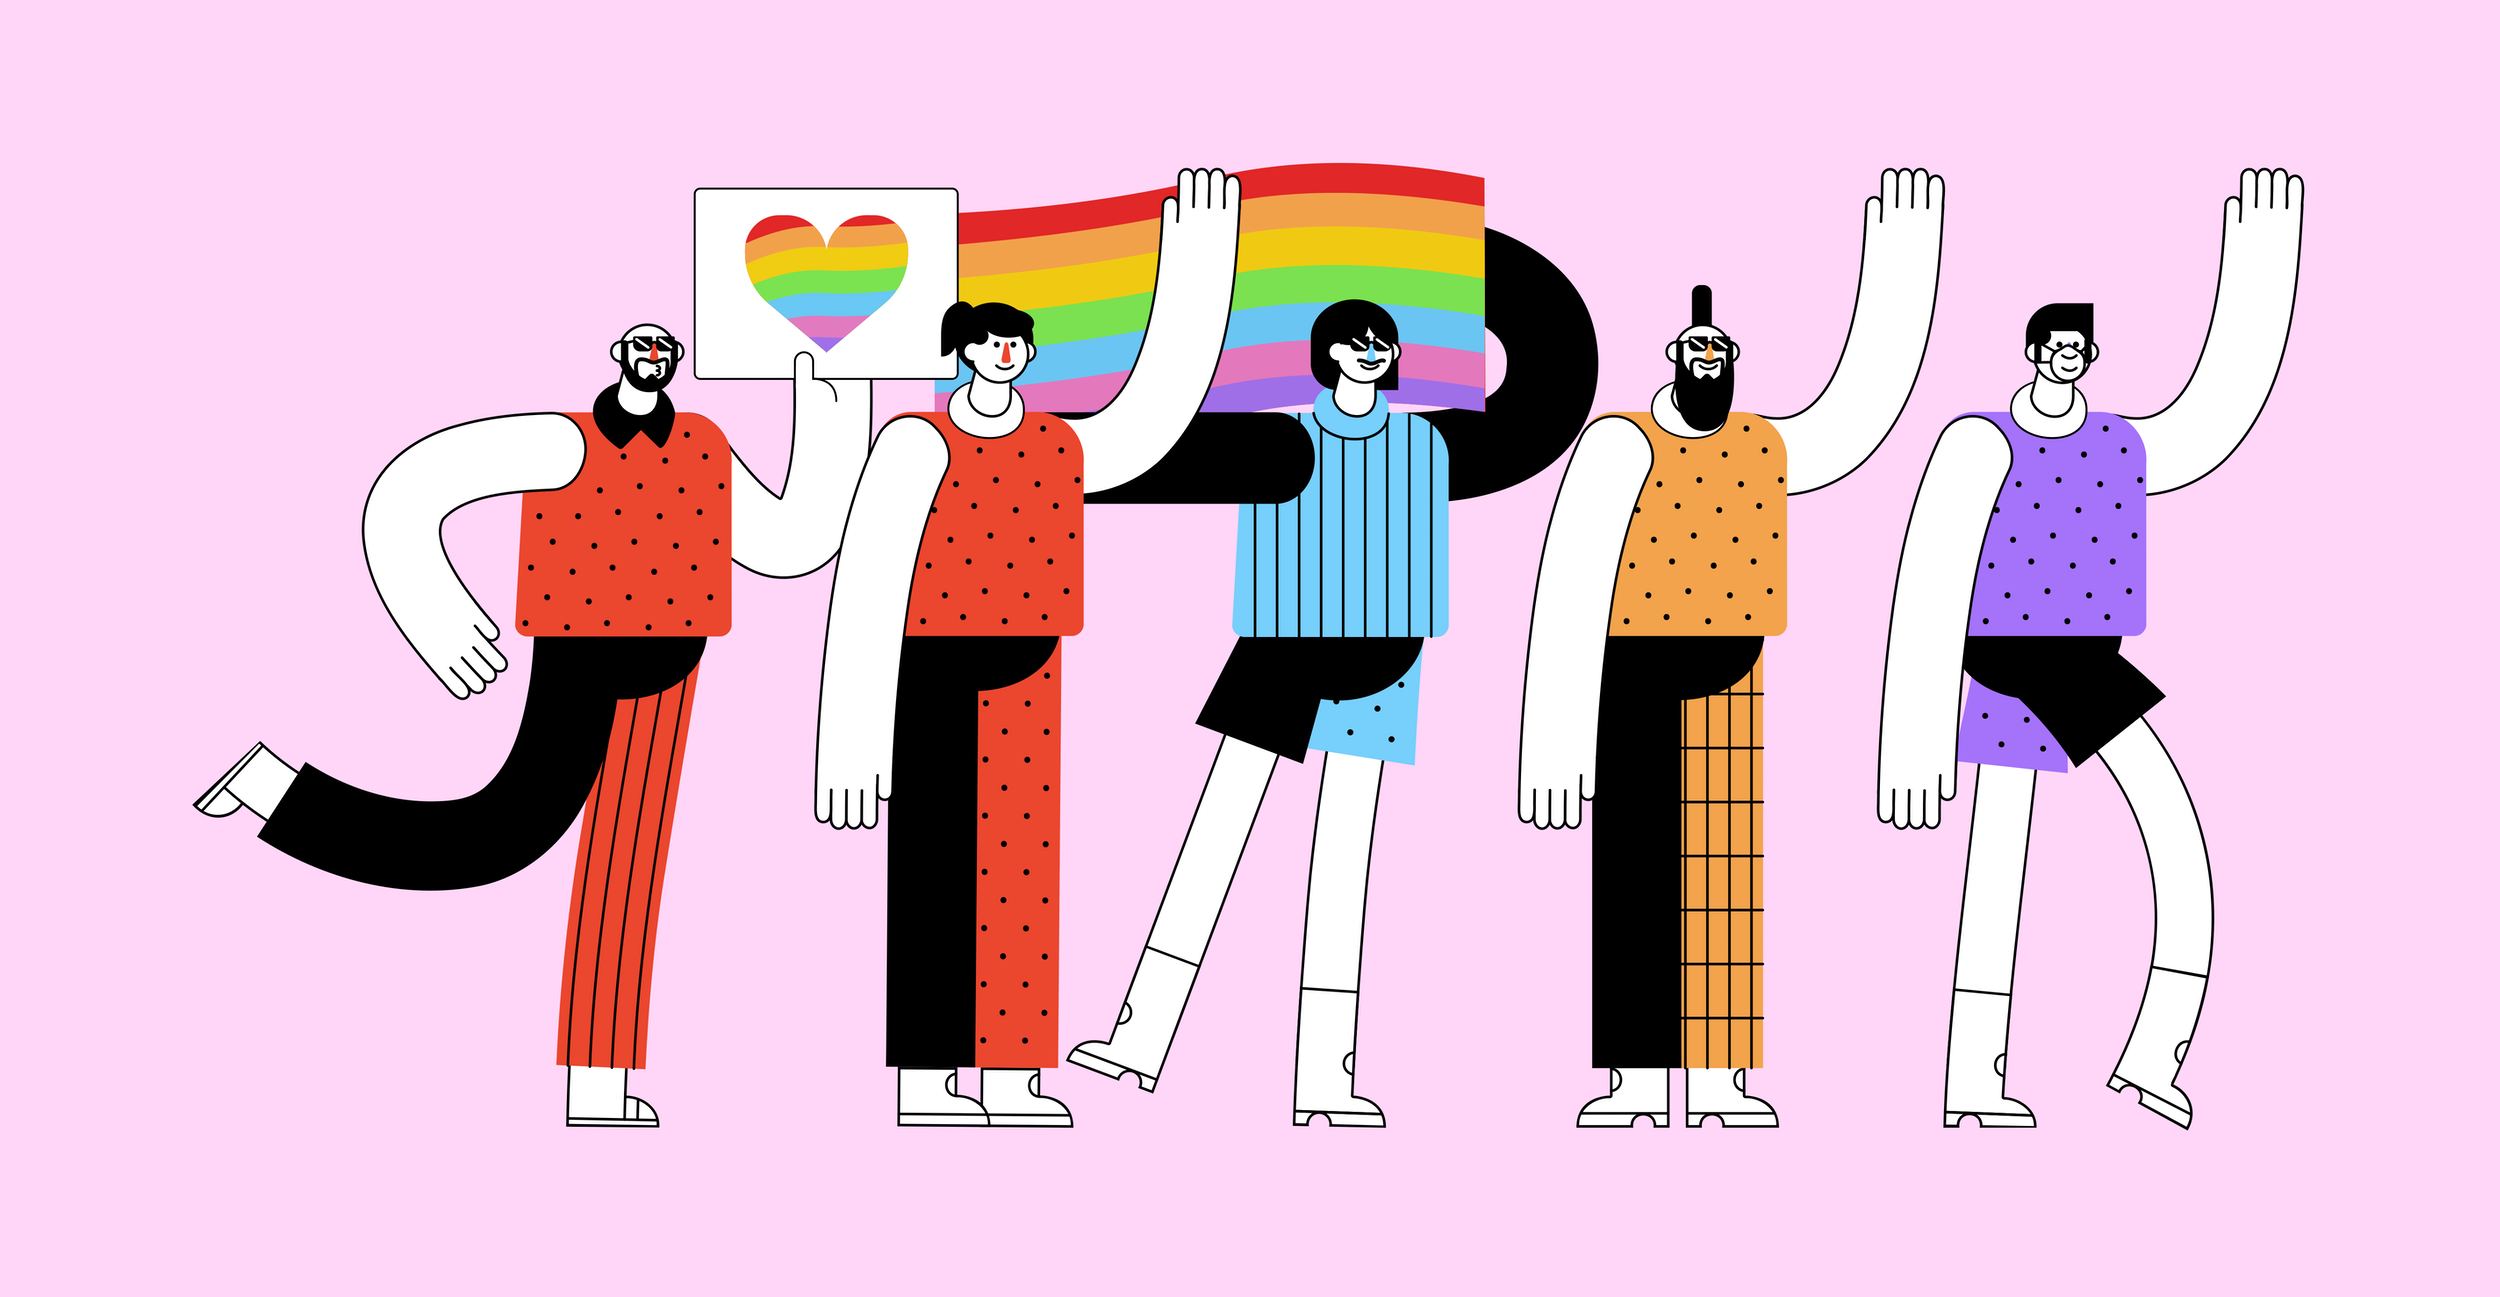 five hand-illustrated doodle characters wearing brightly colored clothes in front sign with a rainbow heart and a rainbow flag